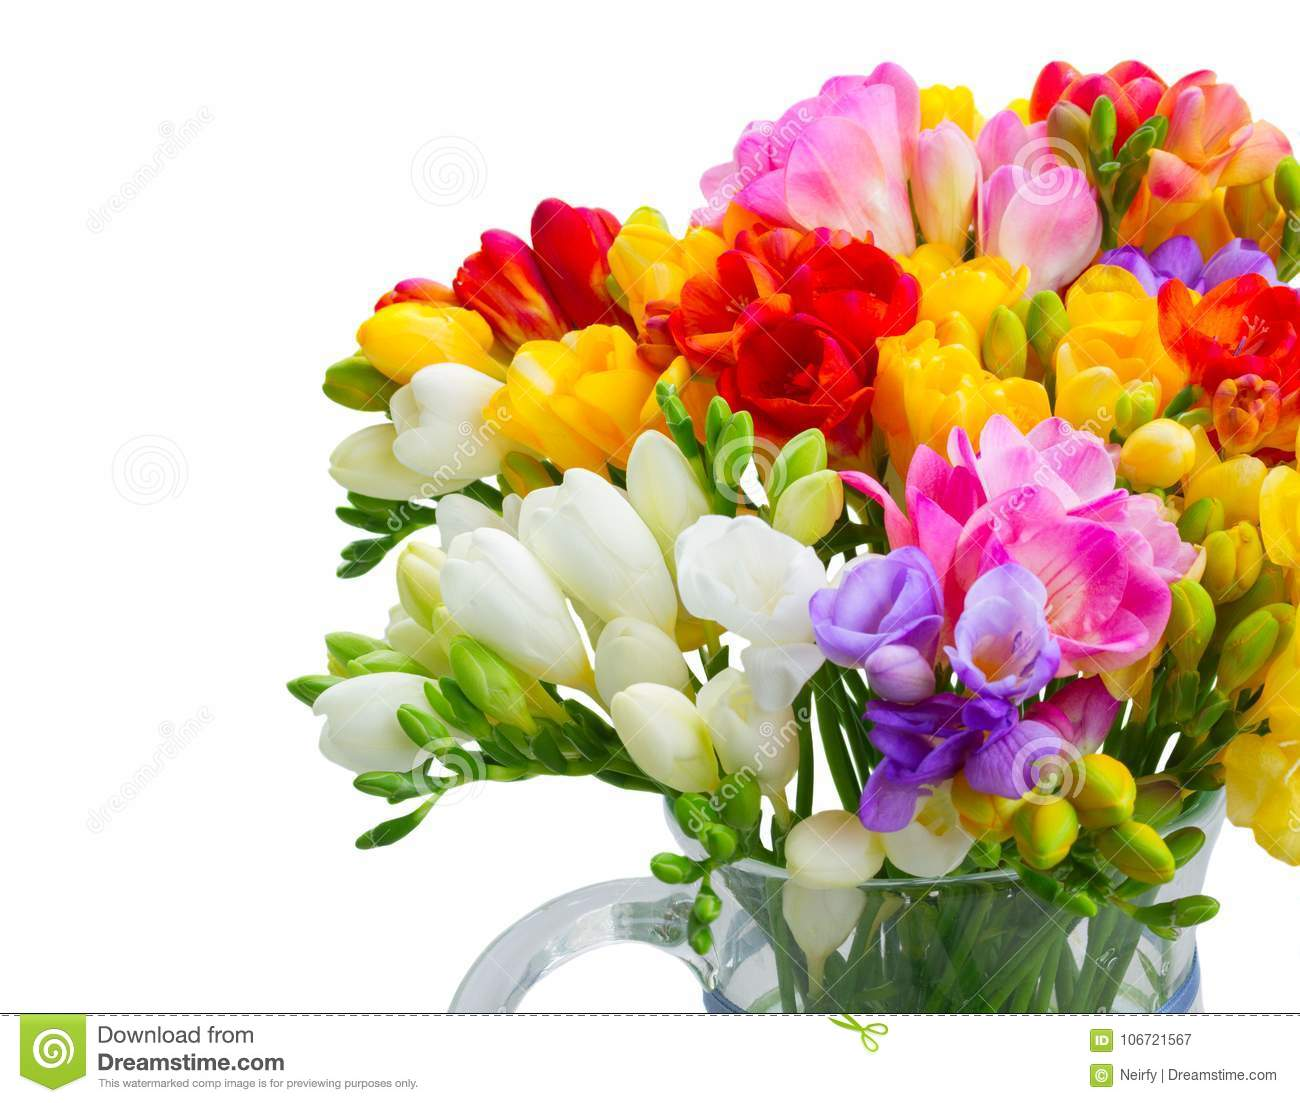 Freesia flowers on white stock image image of natural 106721567 freesia flowers on white izmirmasajfo